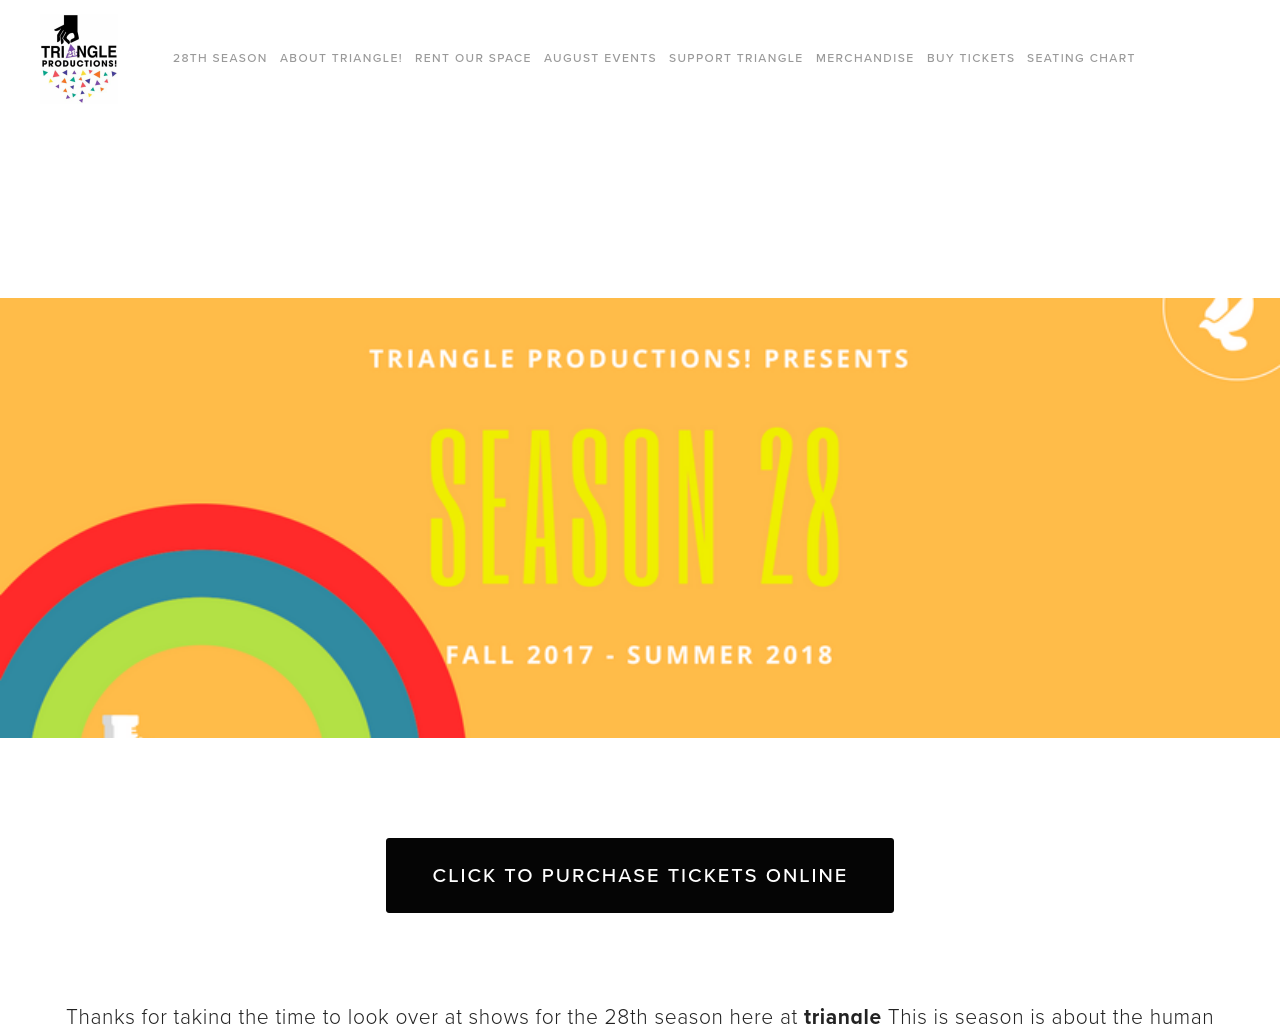 Triangle-Productions!-Advertising-Reviews-Pricing